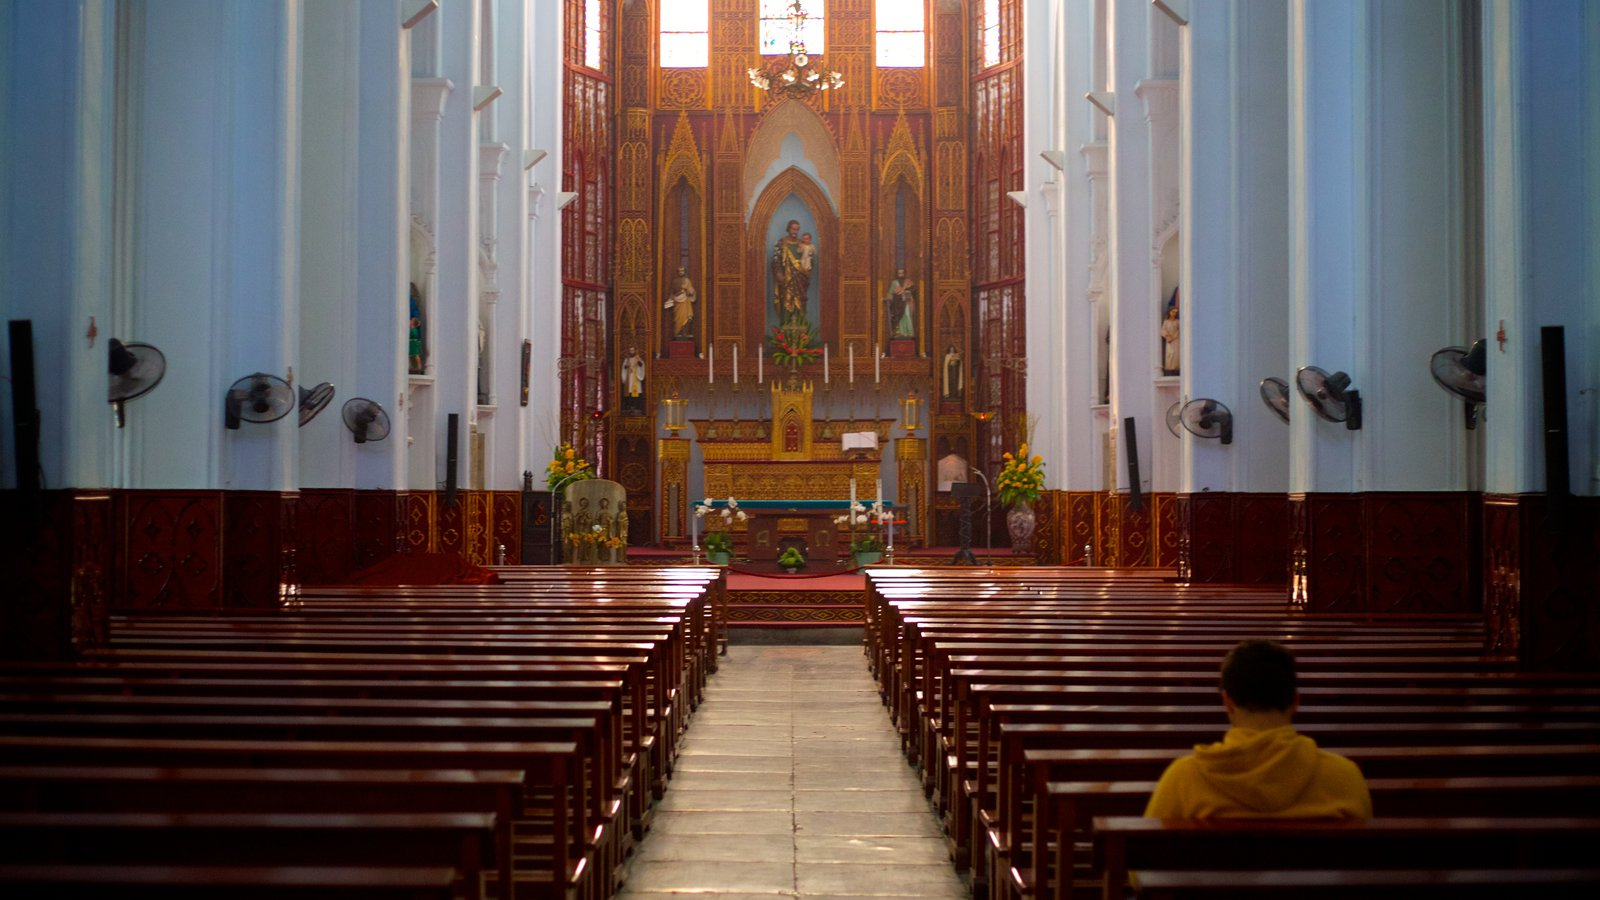 St. Joseph Cathedral featuring religious elements, a church or cathedral and interior views